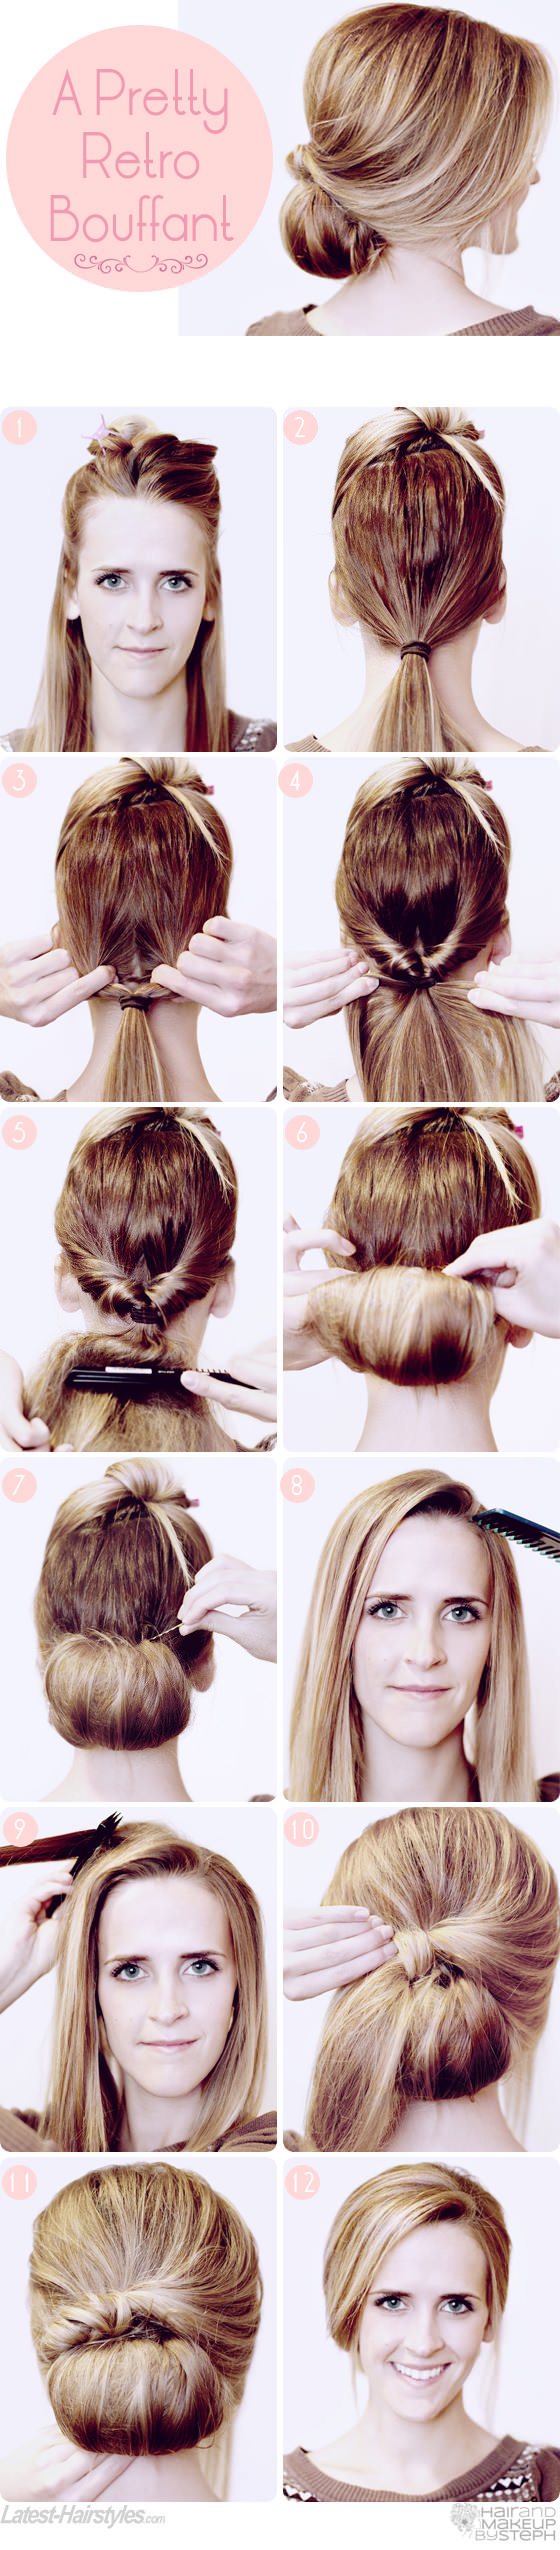 Exceptionally Elegant: 4 Ways to Do a Classy Bouffant